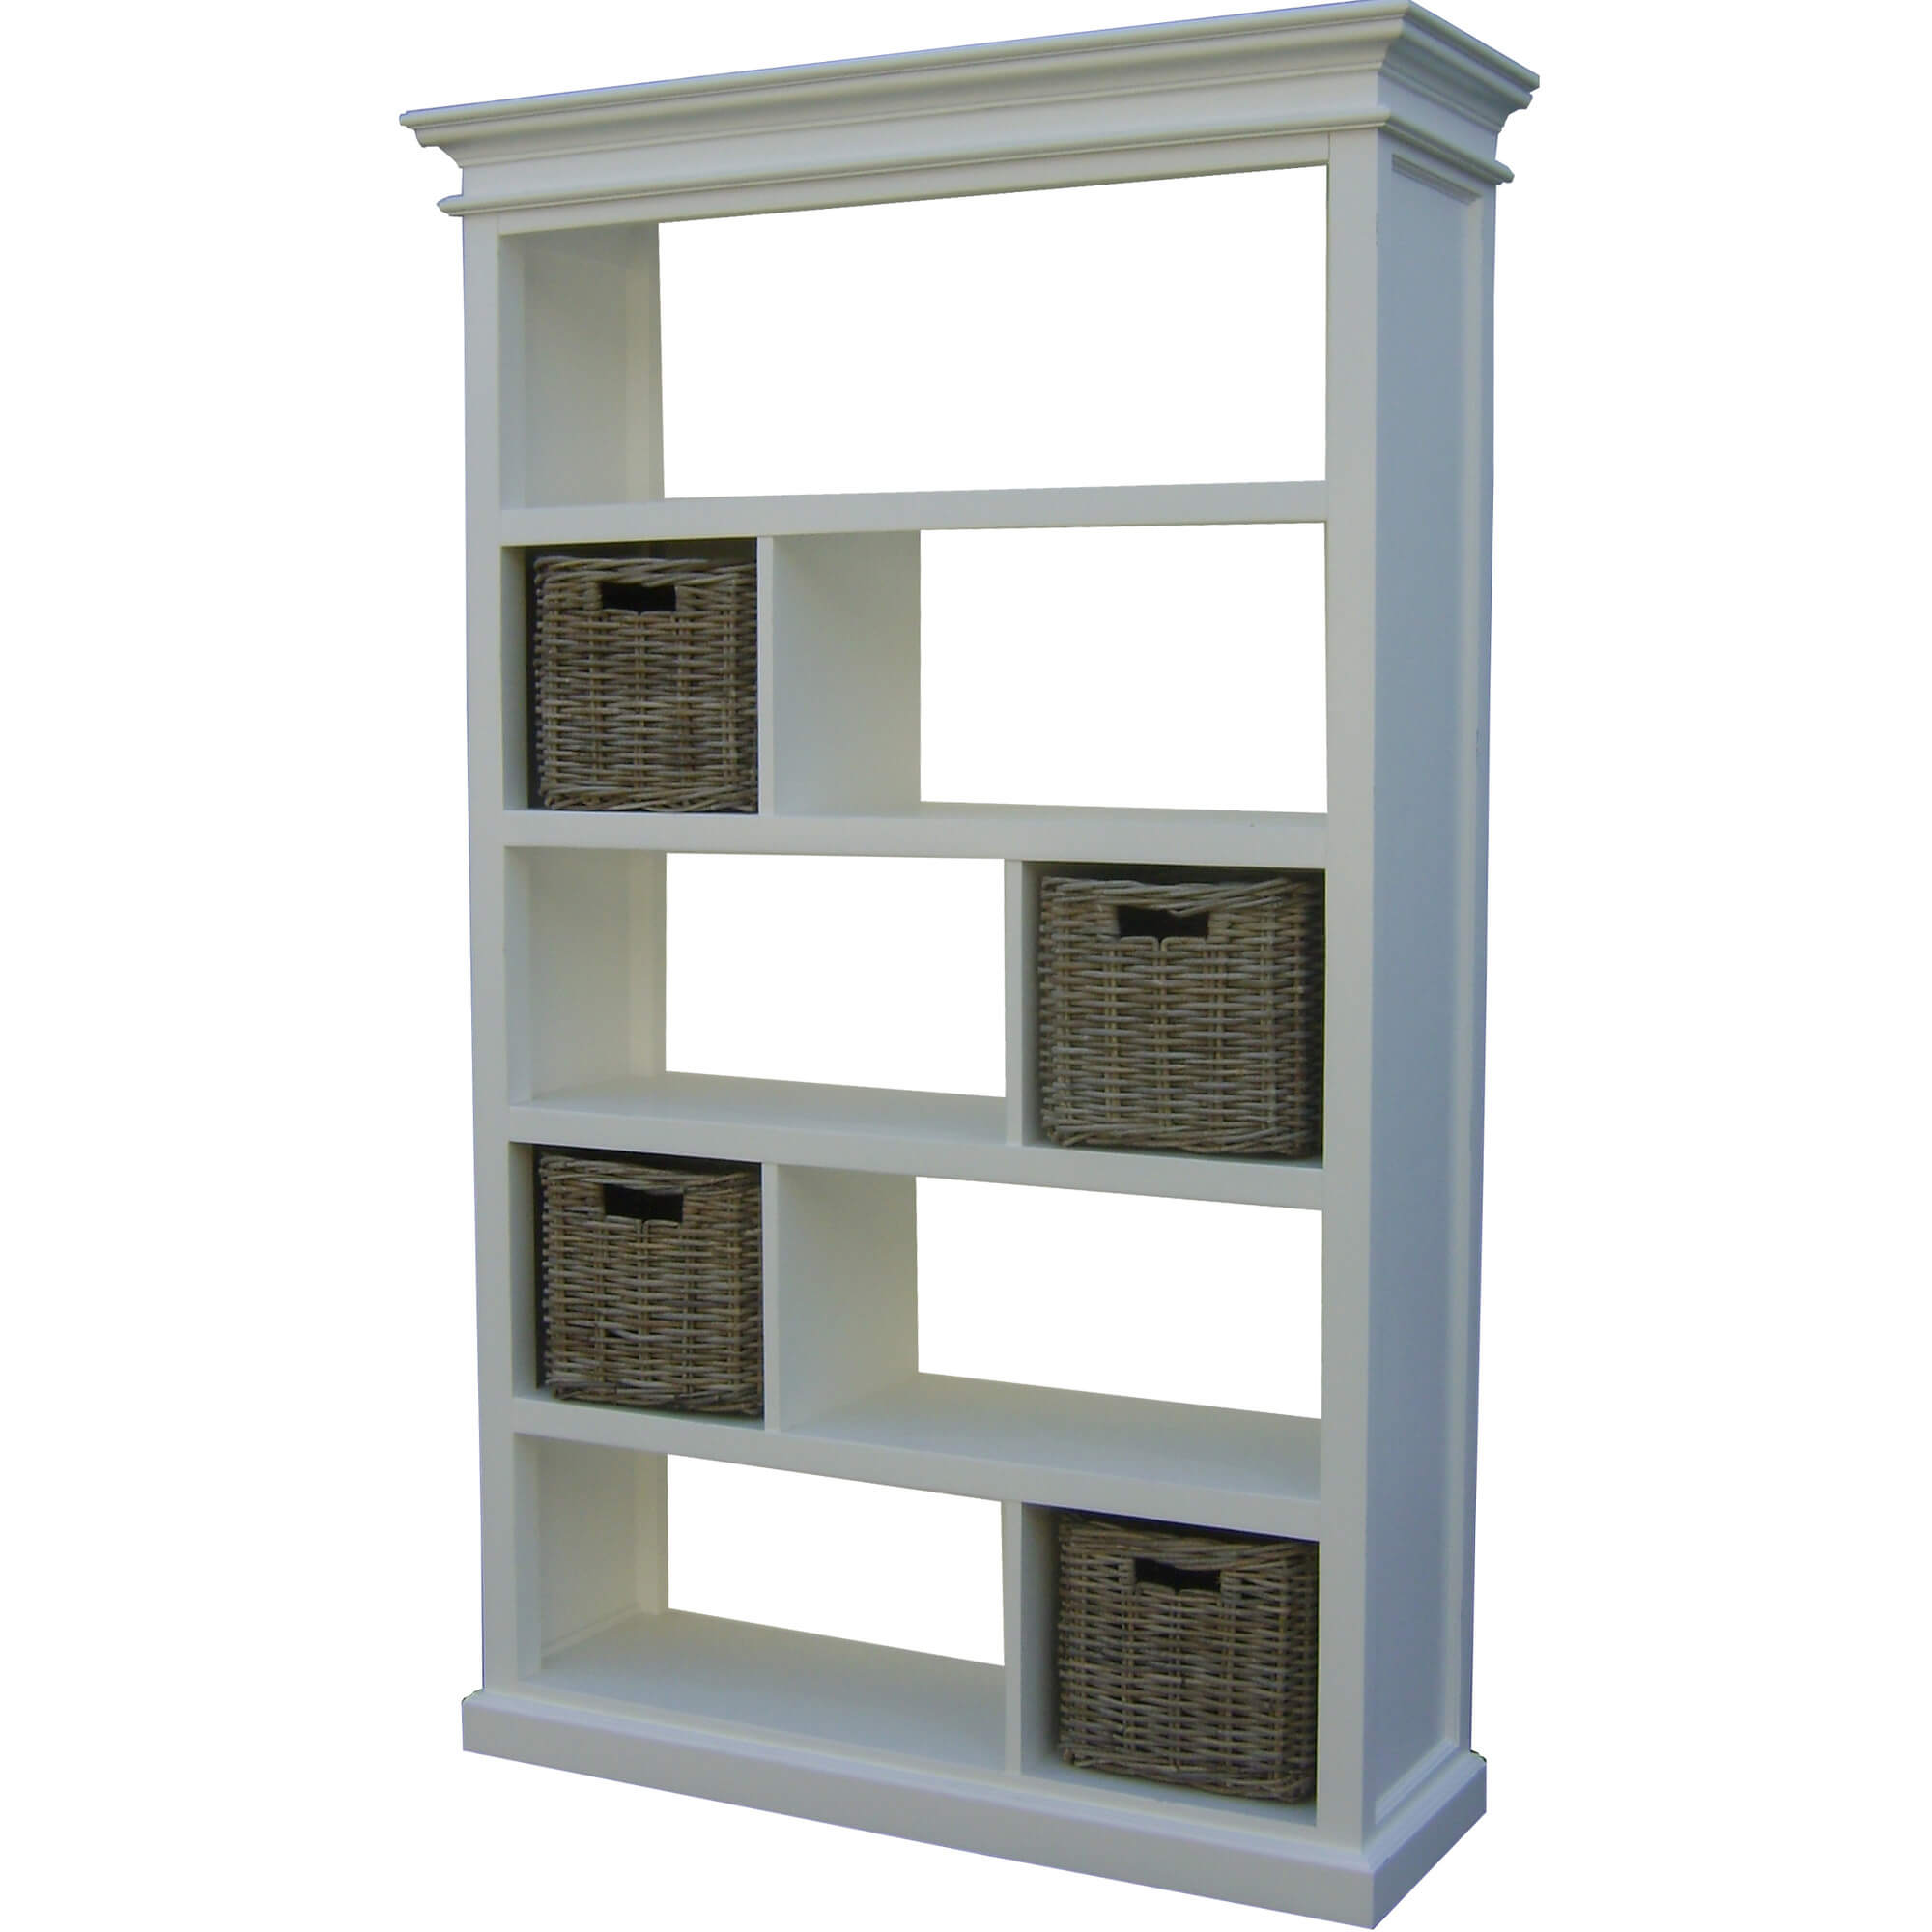 complete products unit furniture kallax shelving units systems shelves storage ikea gb oak cubes en effect shelf